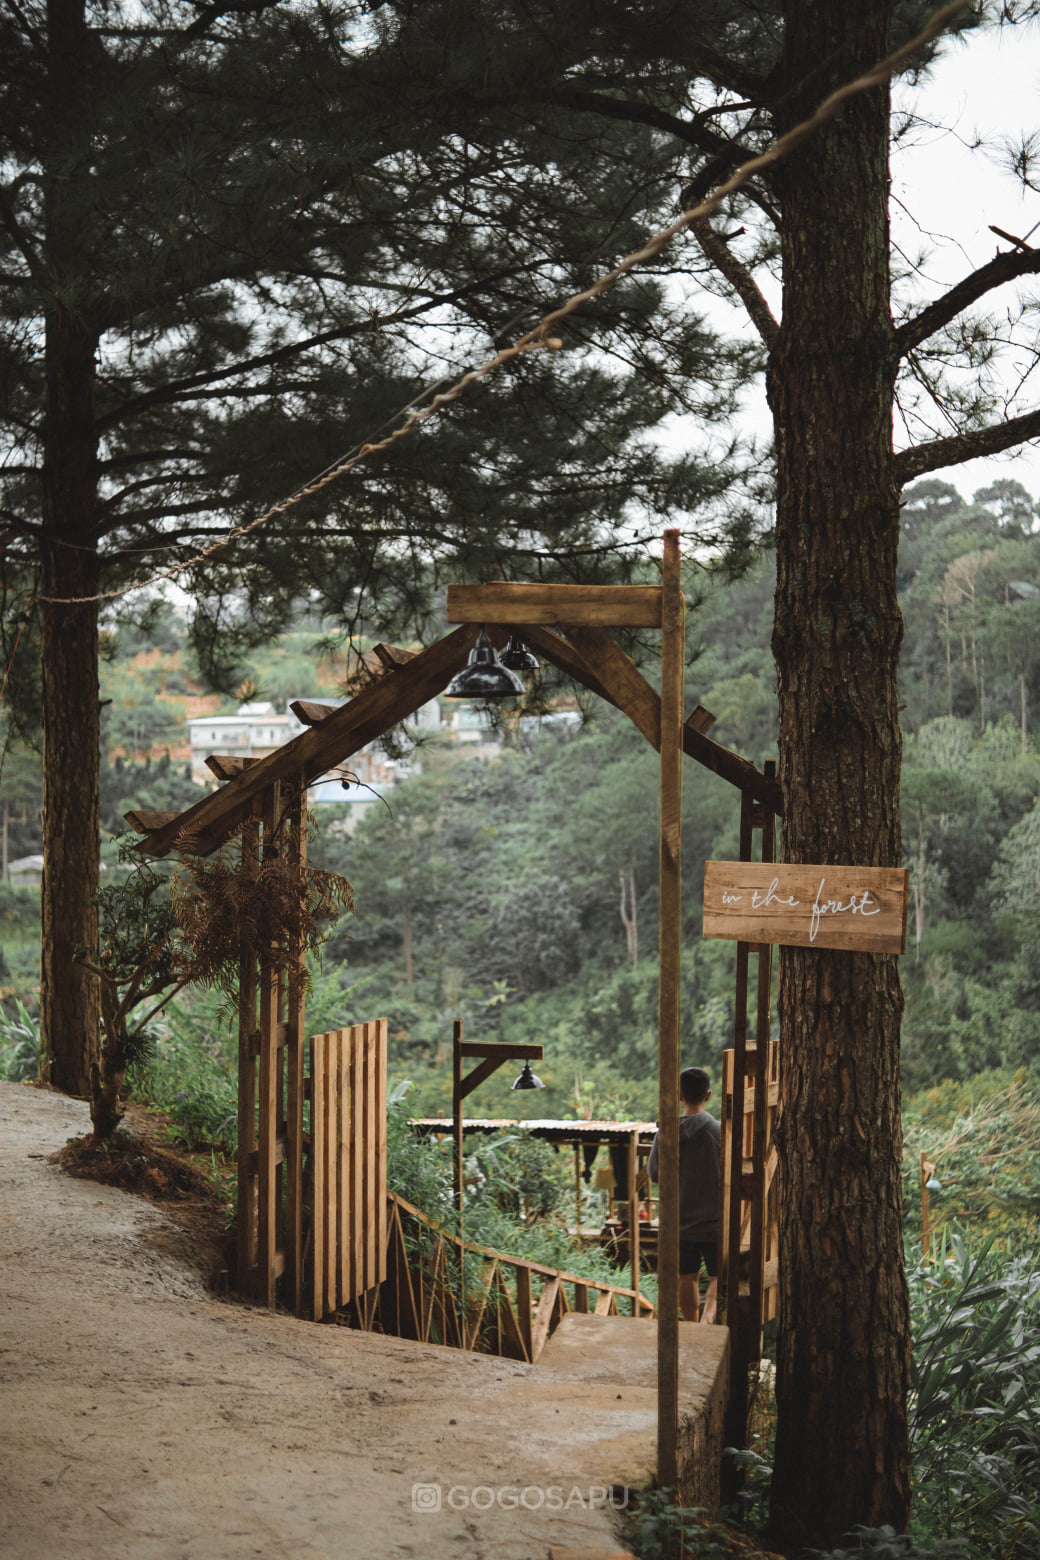 CHECK IN TIỆM CAFE ẨN TRONG RỪNG – IN THE FOREST